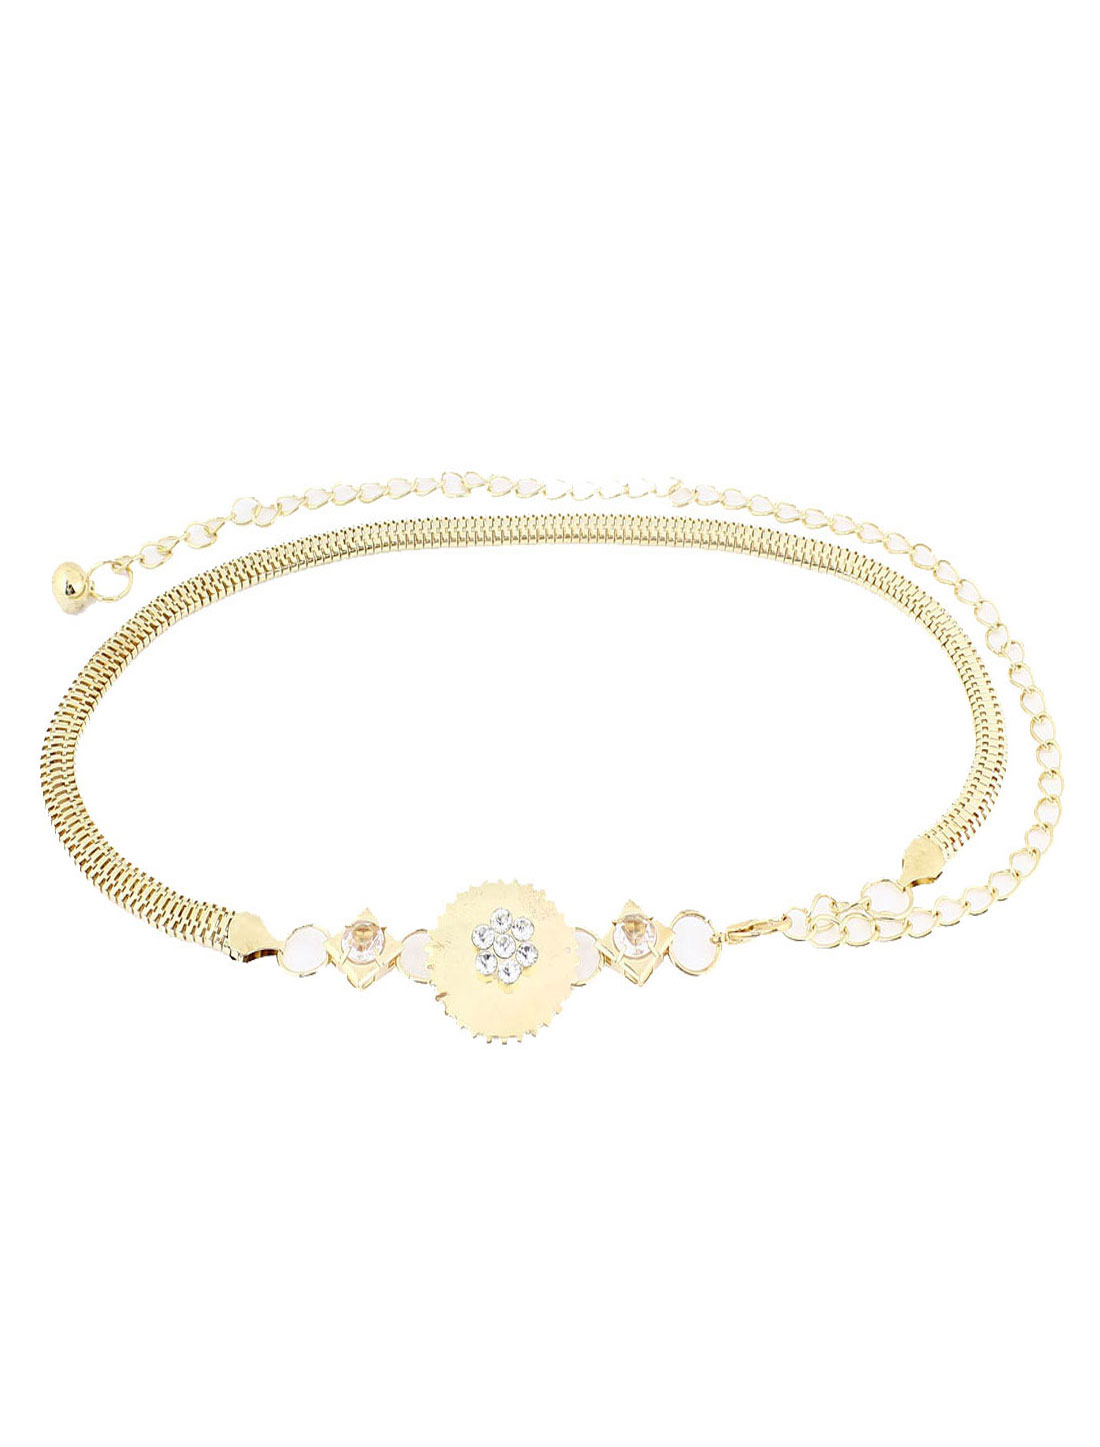 Gold Tone Circle Decor Lobster Clasp Alloy Adjustable Waist Belt for Women